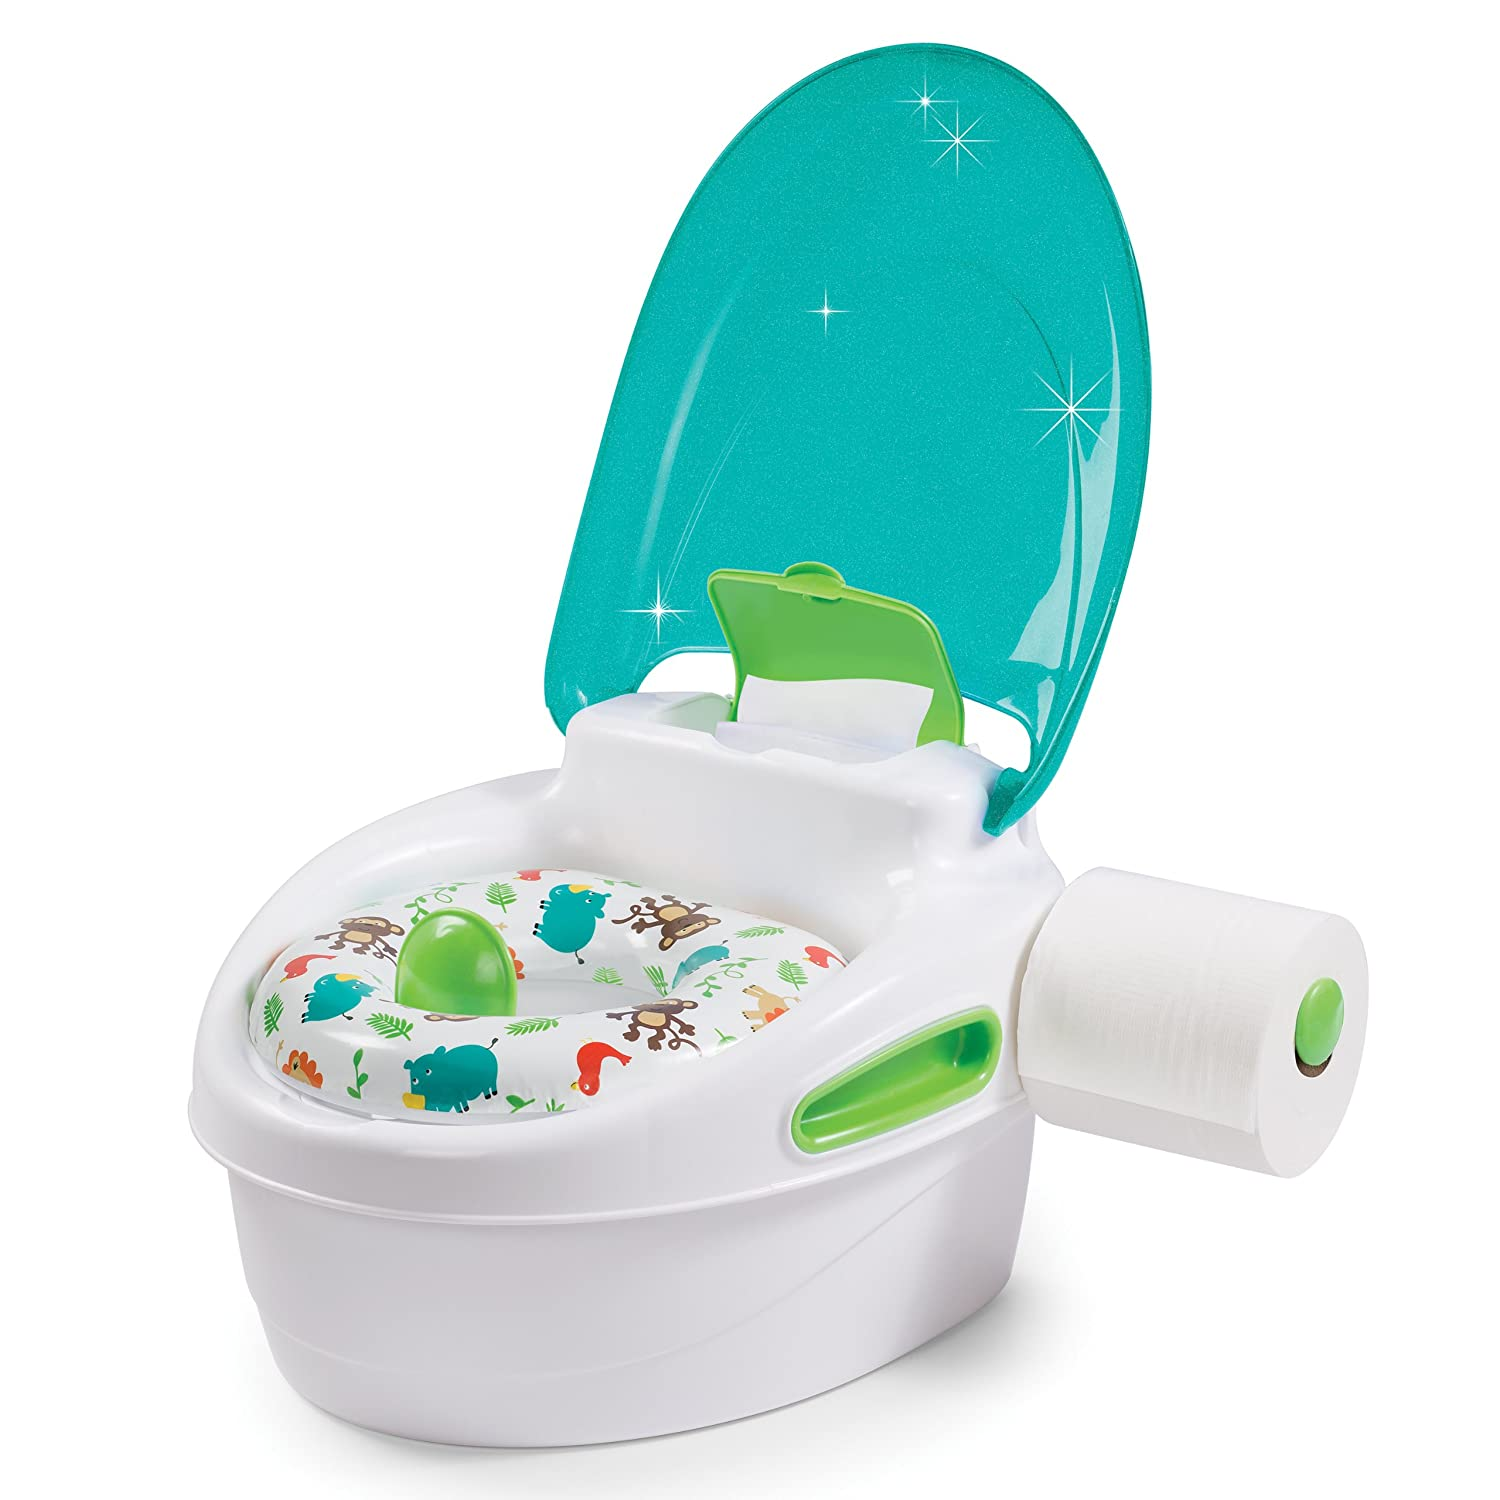 Boys Potty Chair Toilet Pee Trainer Chair Training Seat Potty Toddler Baby